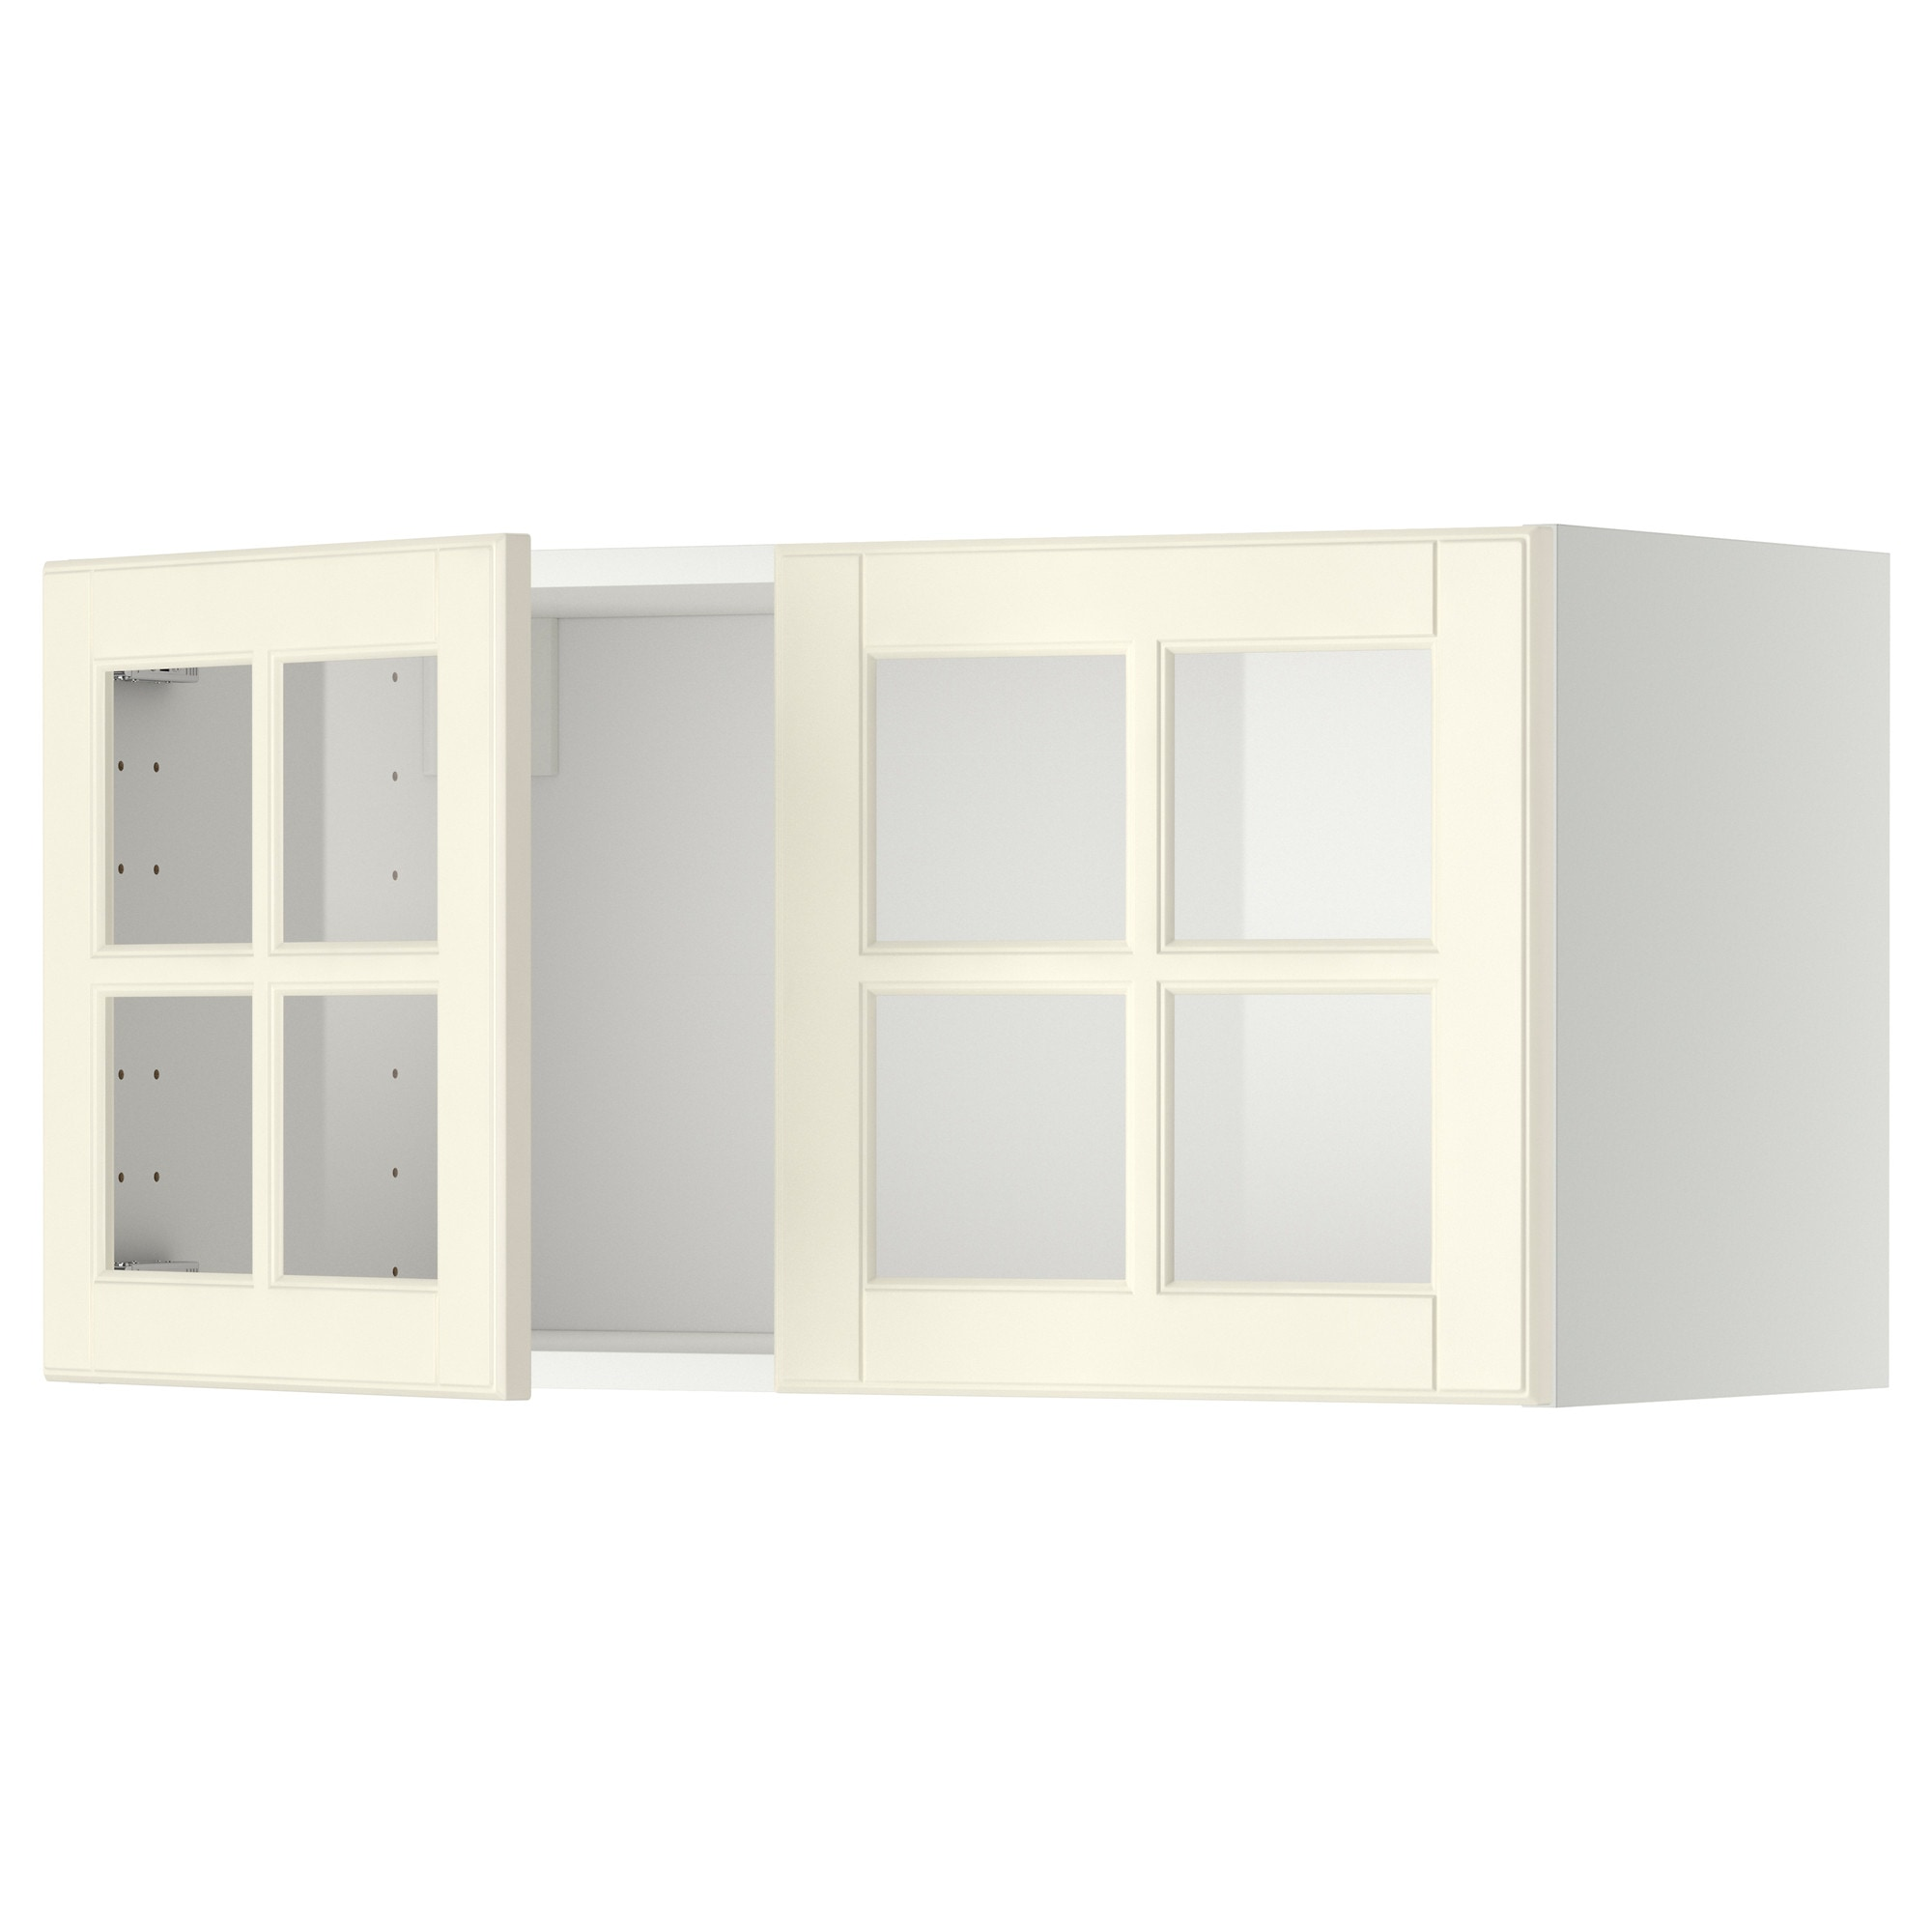 Great METOD Wall Cabinet With 2 Glass Doors   White, Bodbyn Off White   IKEA